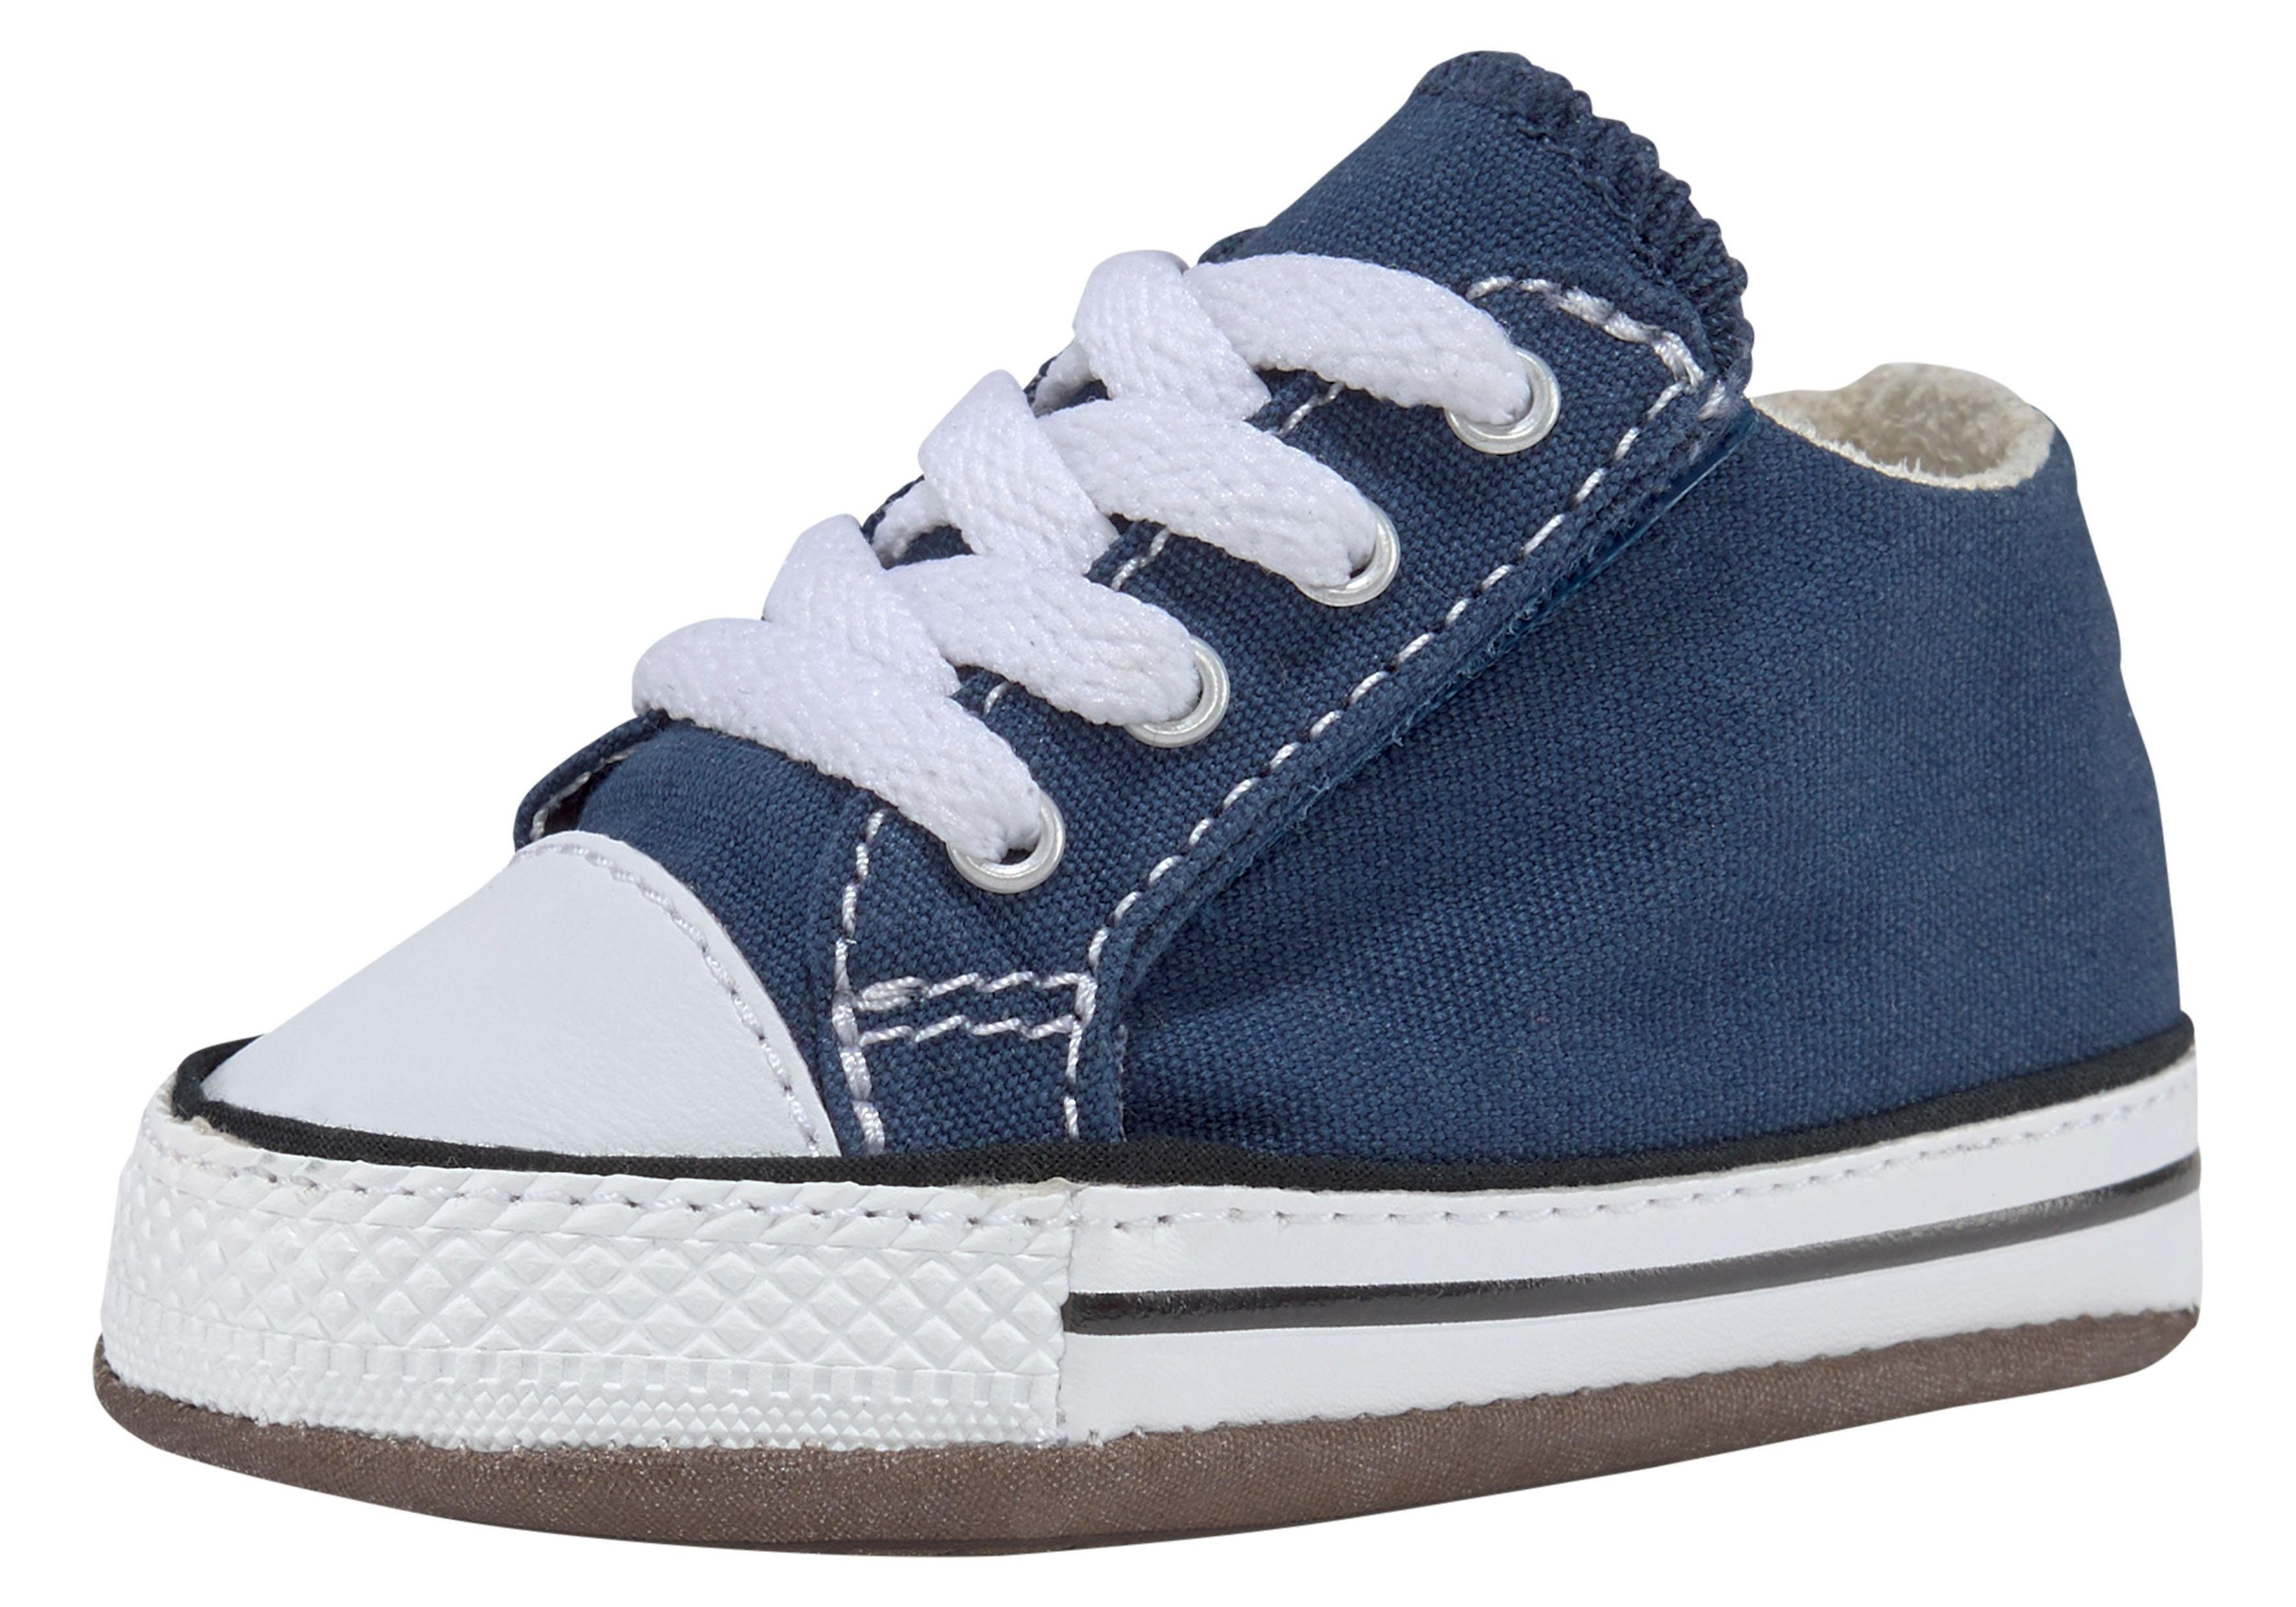 Converse »Kinder Chuck Taylor All Star Cribster Canvas Color Mid« Sneaker Baby online kaufen | OTTO